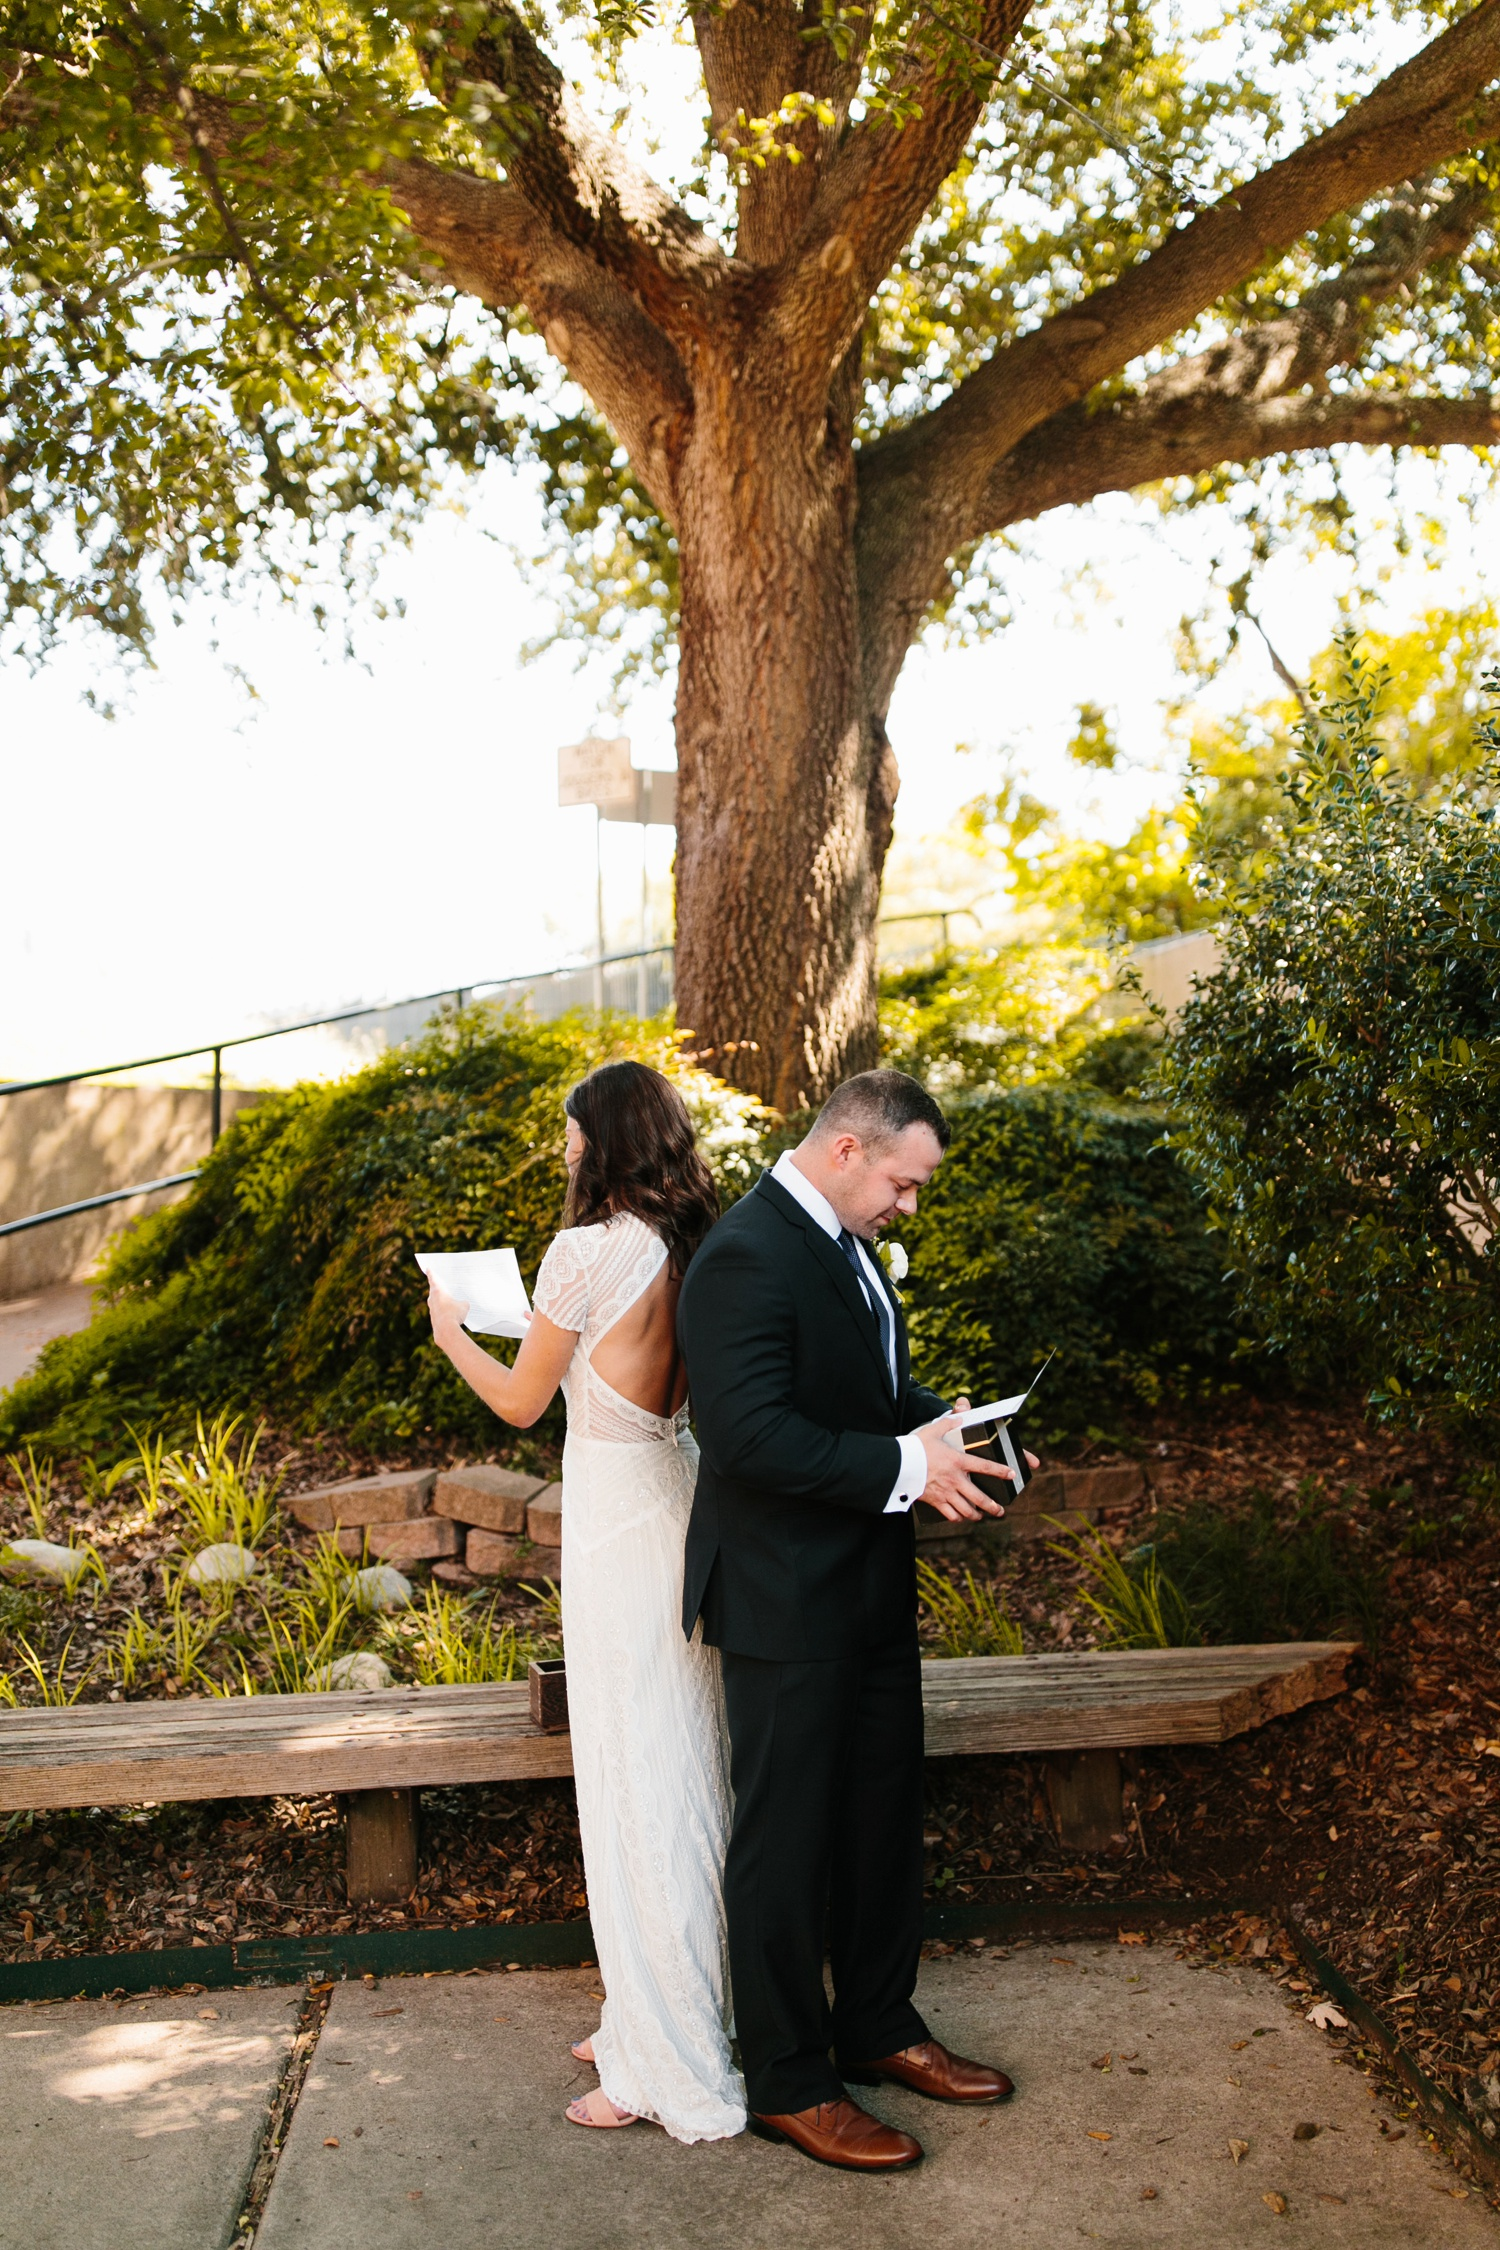 Kadee + Tyler | a raw, emotional wedding at the Filter Building on White Rock Lake in Dallas, TX by North Texas Wedding Photographer, Rachel Meagan Photography 044